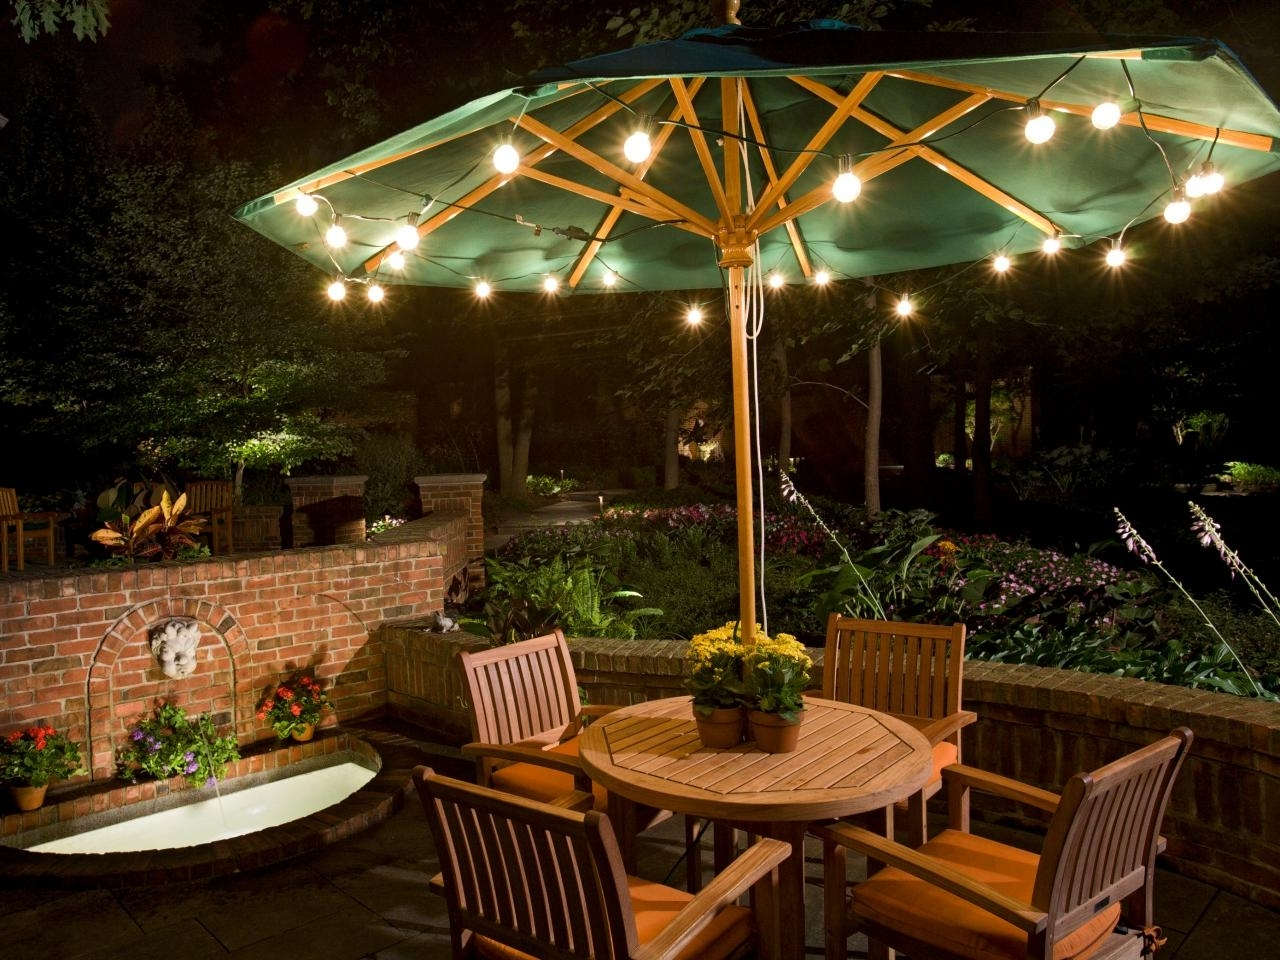 Umbrella Outdoor Landscape Lighting : Latest Trend In Outdoor Intended For Most Up To Date Outdoor Umbrella Lanterns (View 16 of 20)